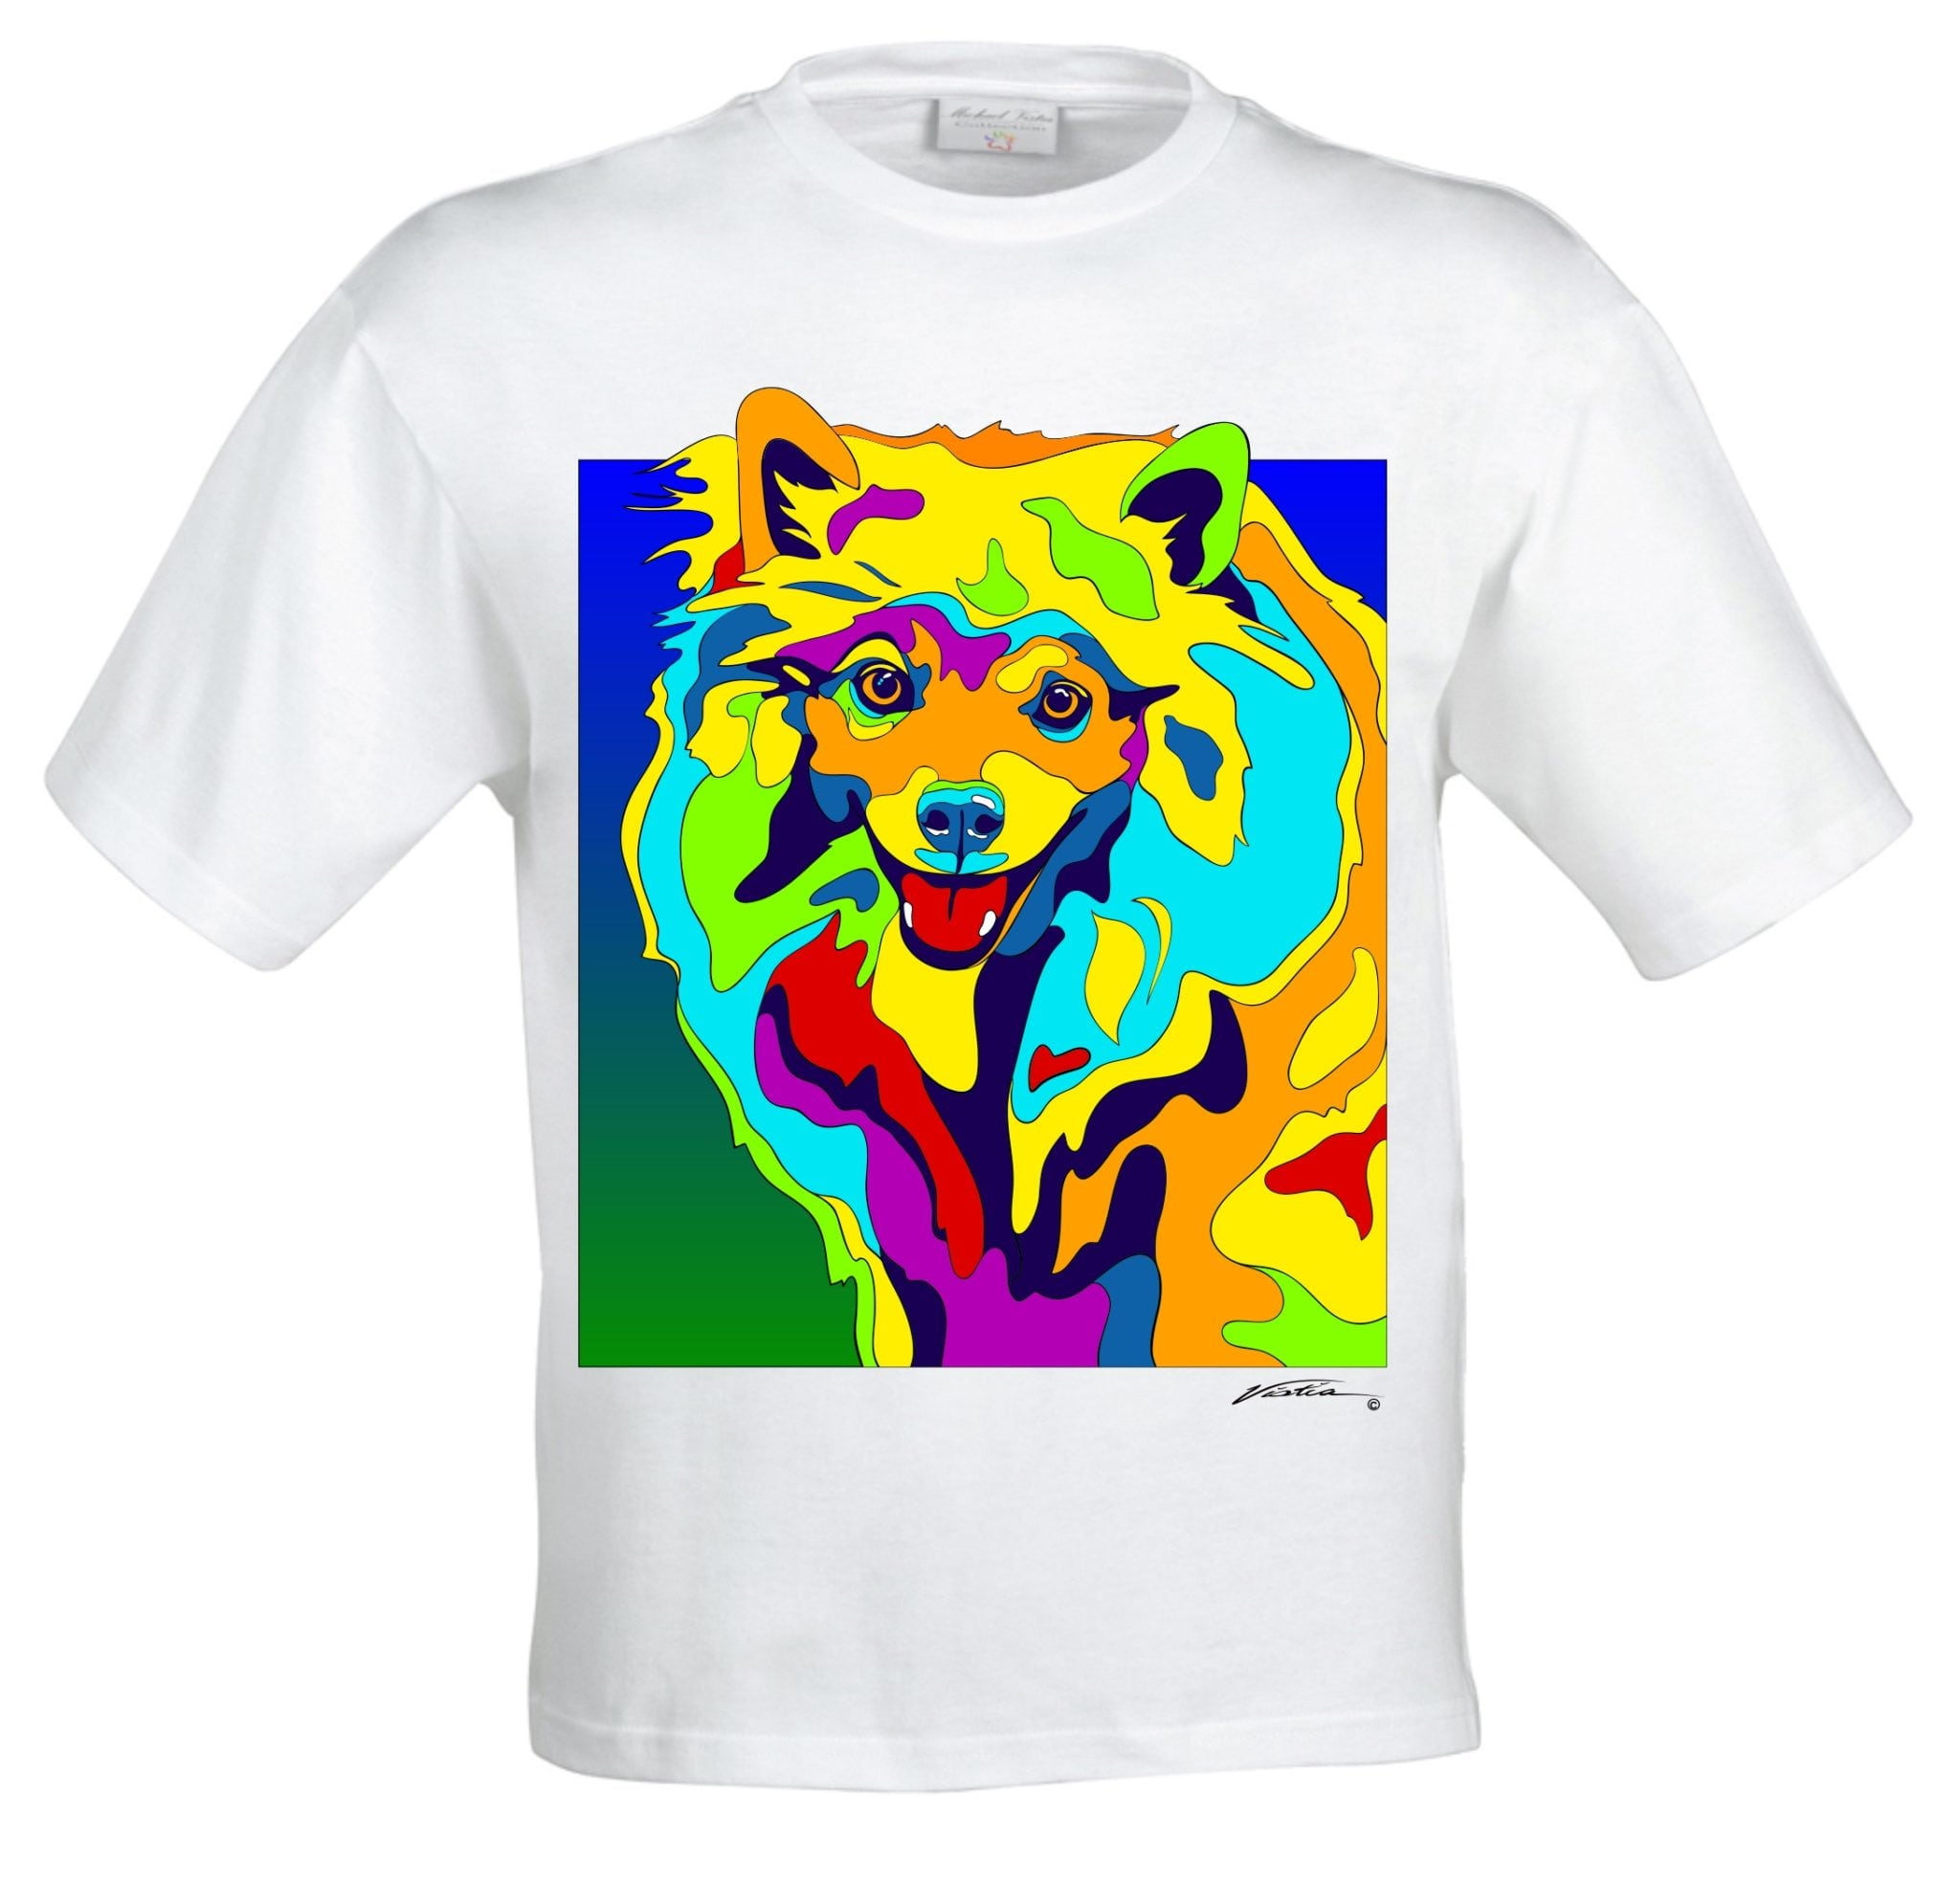 American Eskimo dog - Dog Pictures, Dog Print, Dog Art. Wall Art and Wooden Signs with Dog Pictures and Dog Quotes. Features the American Eskimo dog breed.